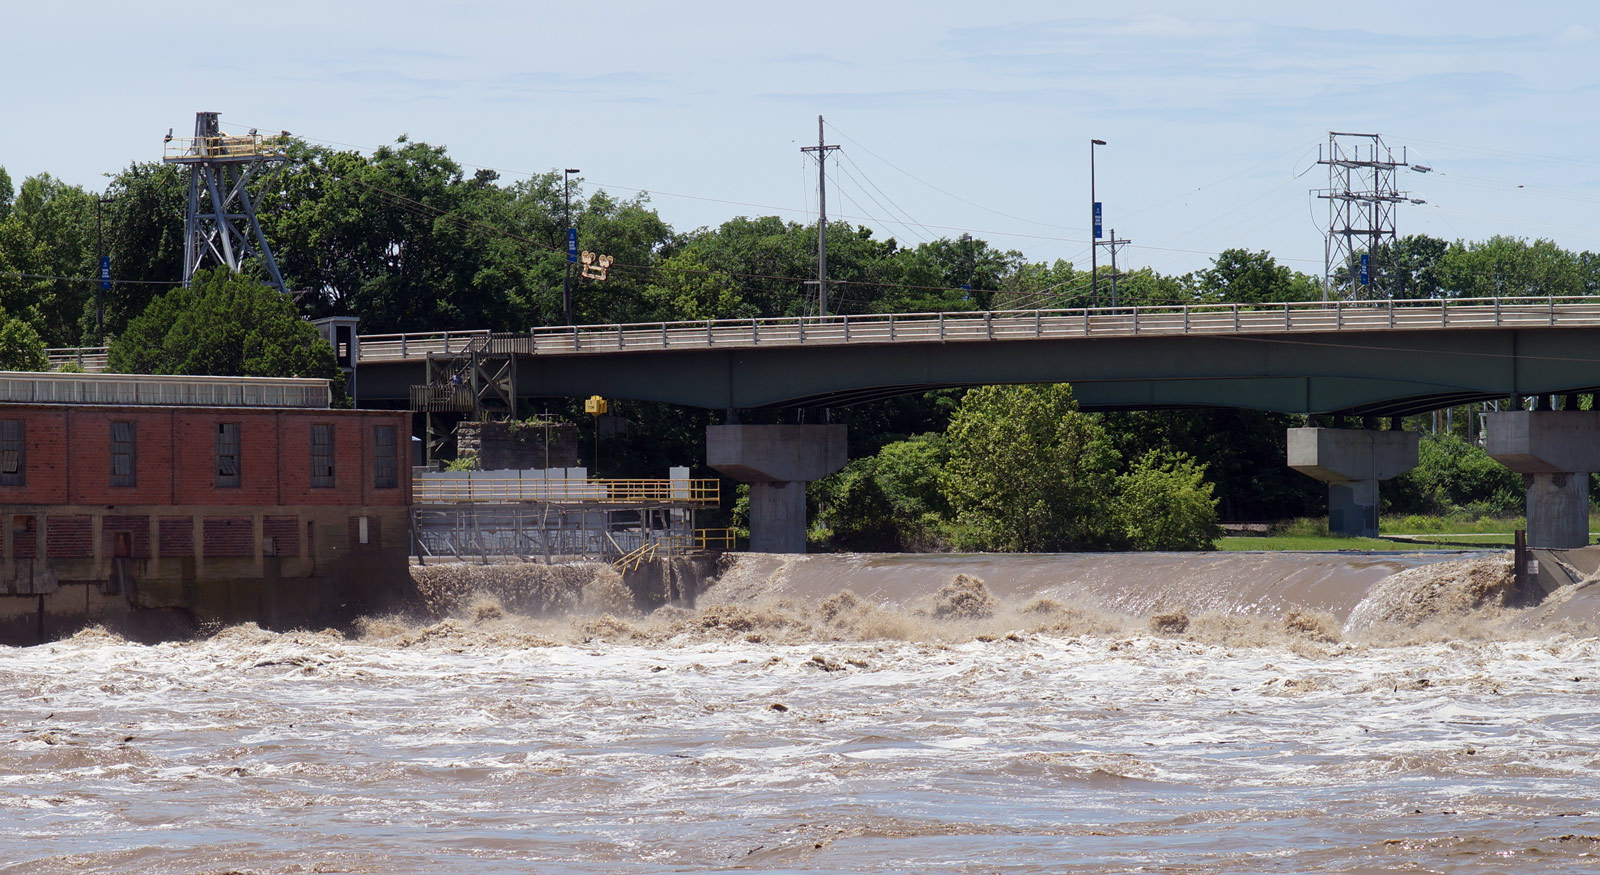 The Kansas River turns into rapids as it passes the dam in Lawrence KS. Photo credit: Danny Mantyla.